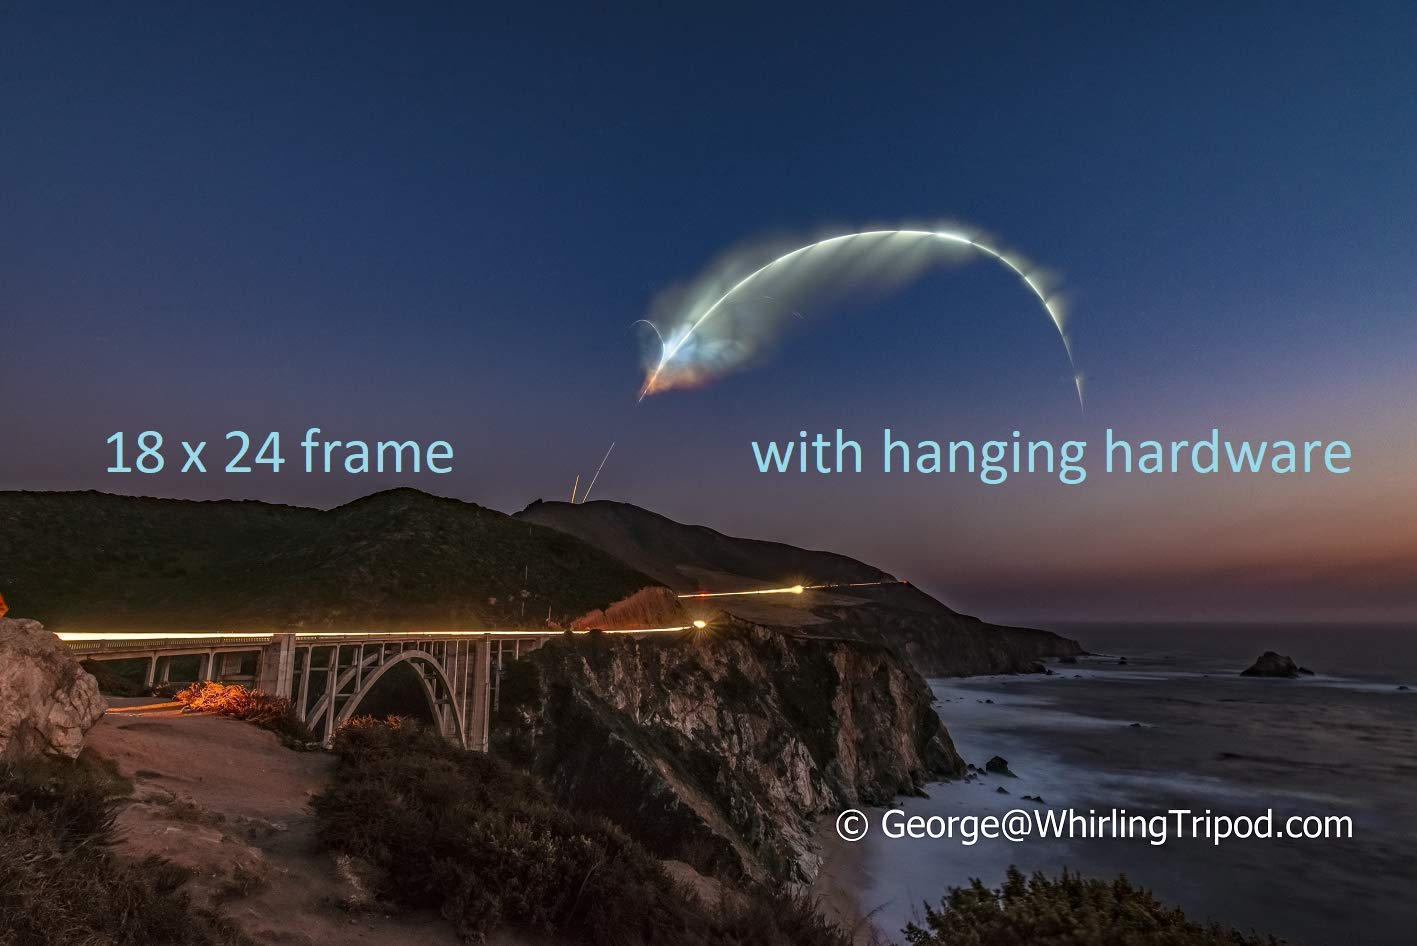 SpaceX Falcon 9's First Landing at California - Vandenberg (FRAMED PRINT)